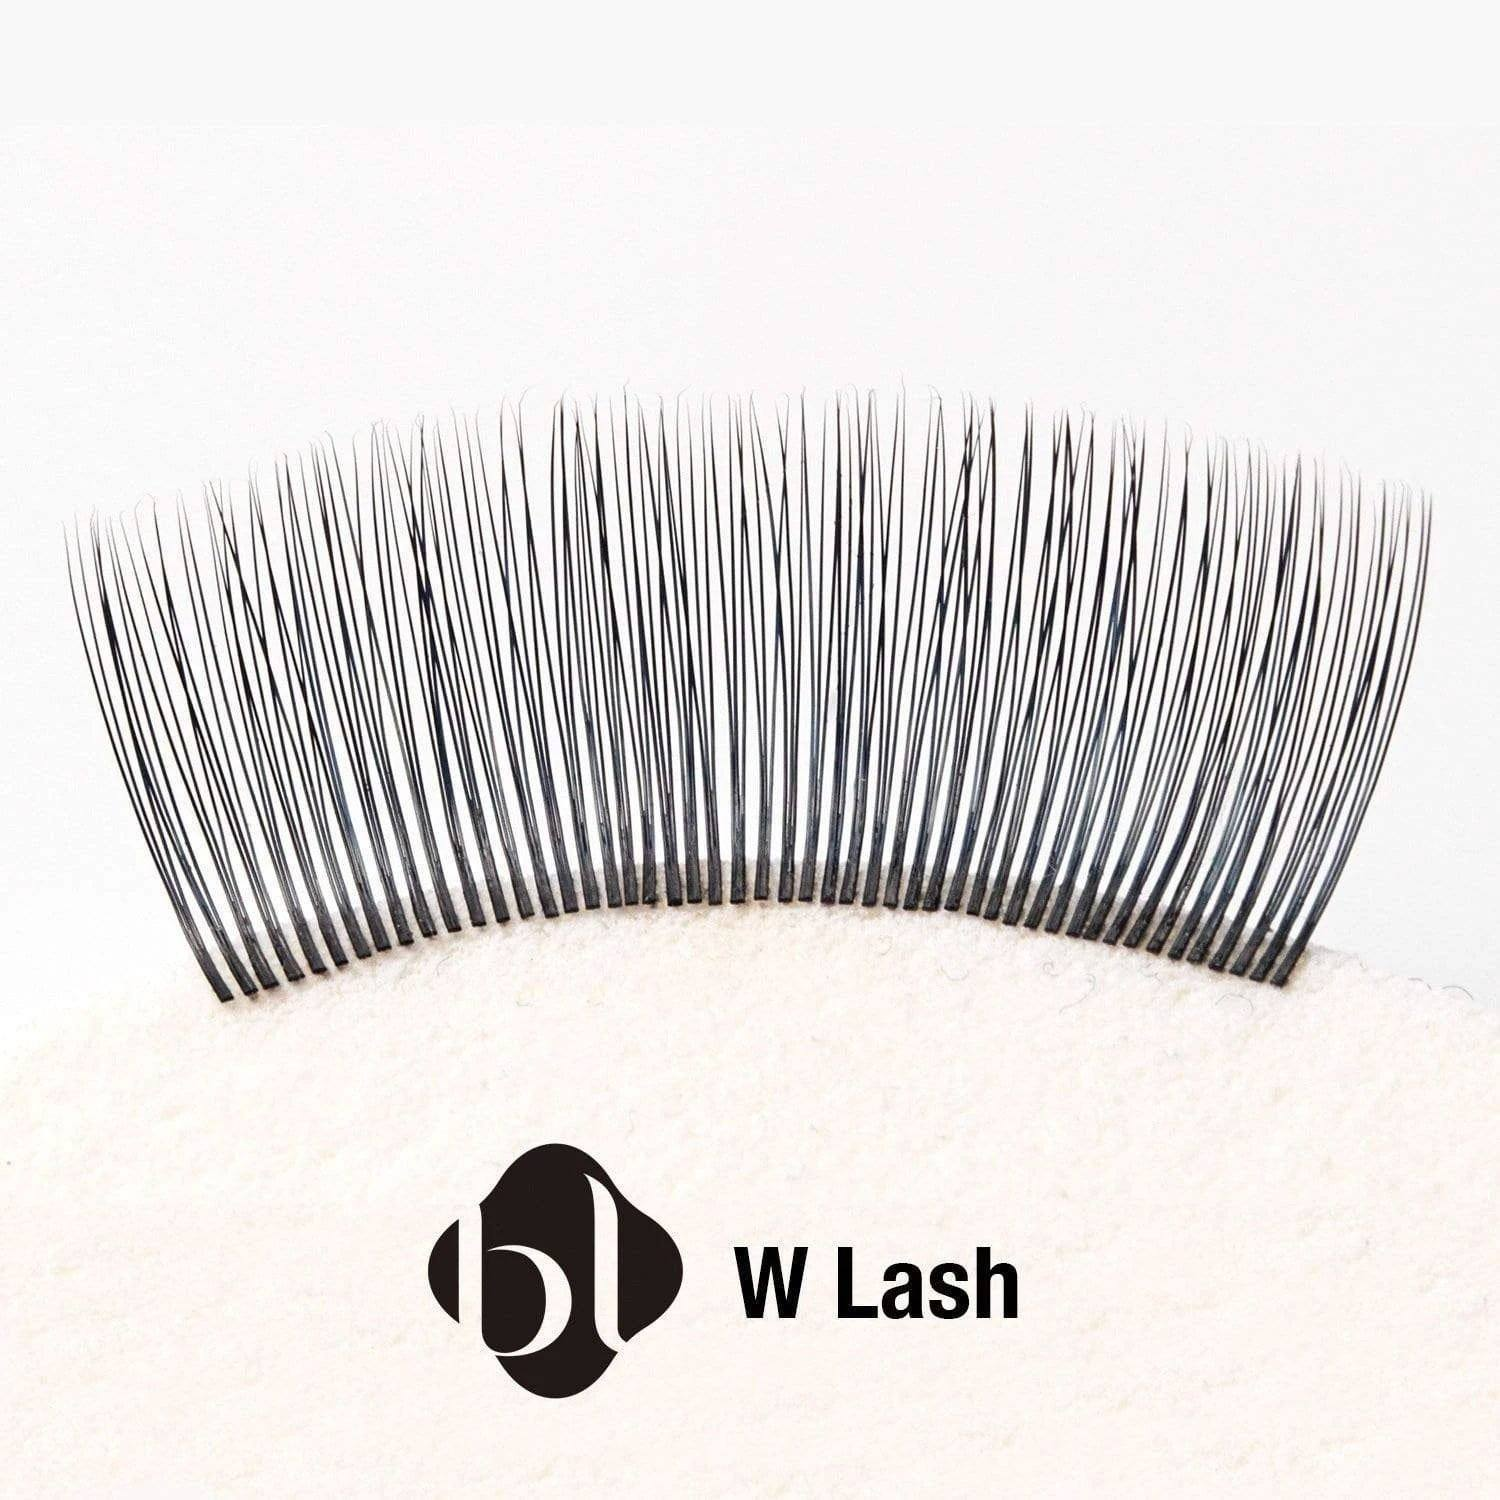 Blink BL Lashes W Lash Extensions 0.10